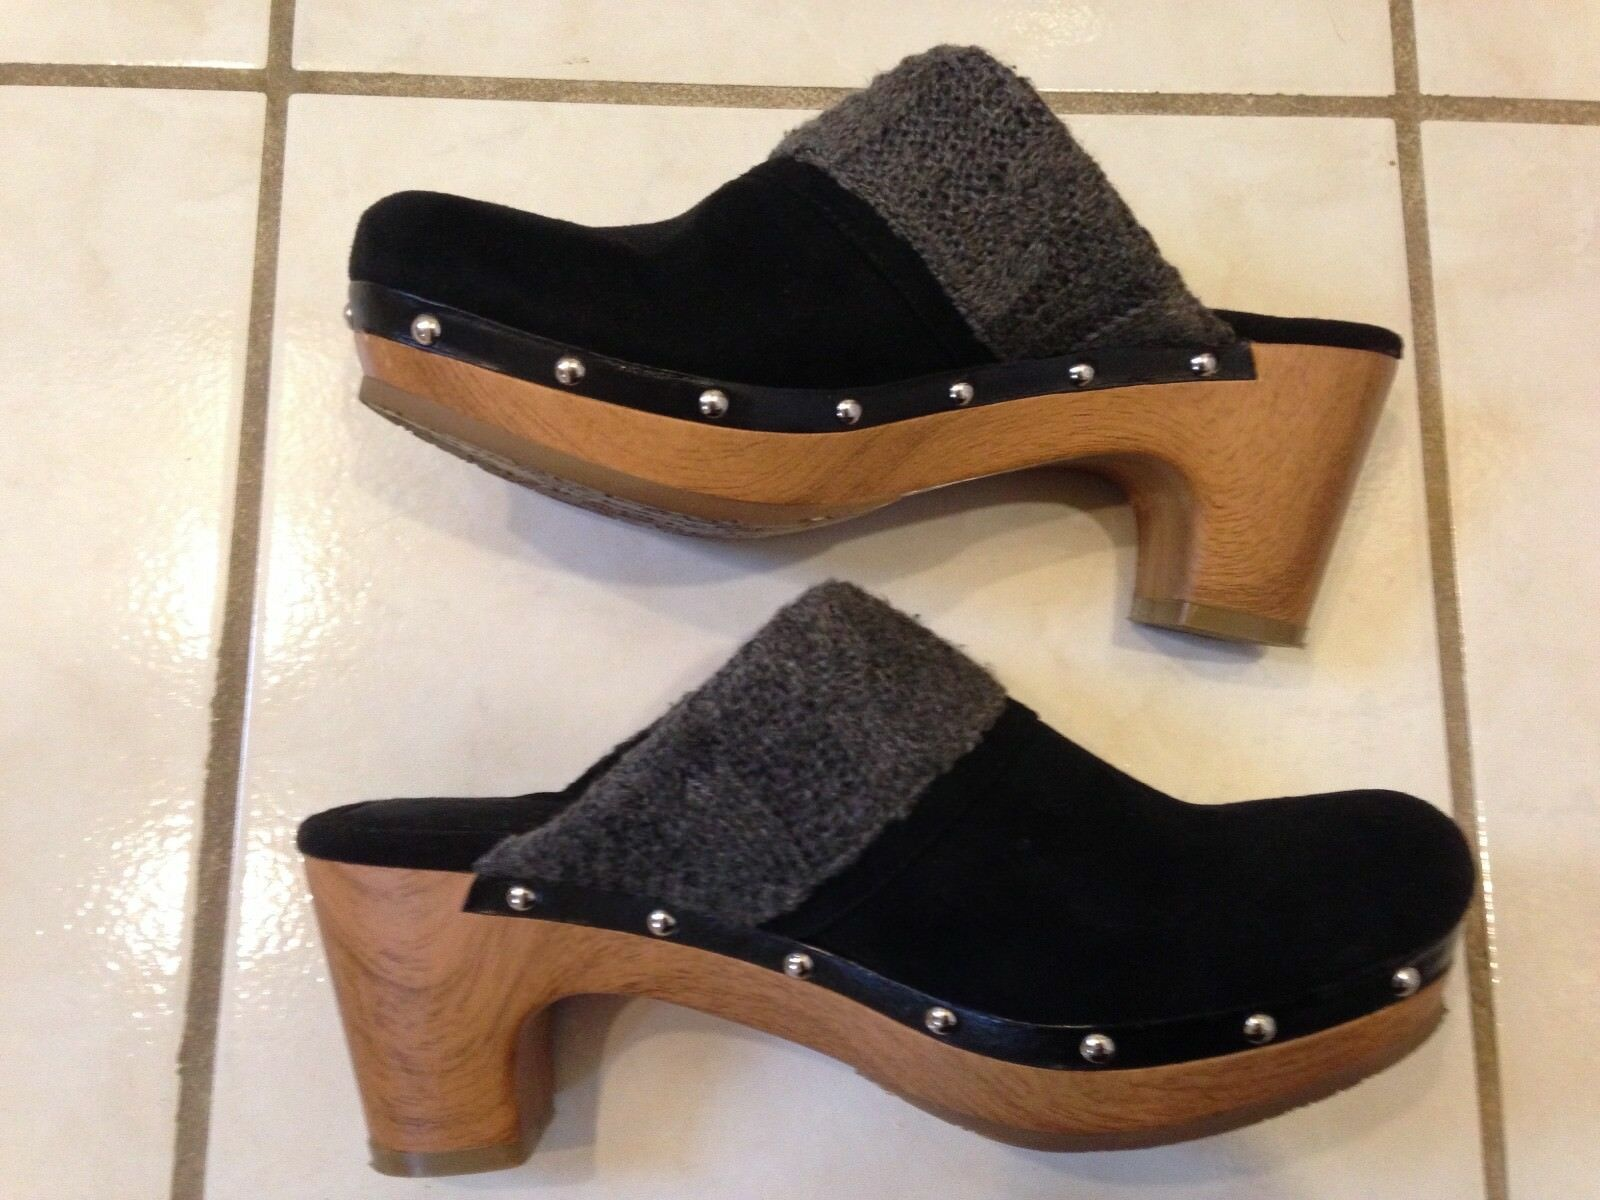 Style & Faux Co Clogs in Black Faux & Suede, Size 7 M 887f55